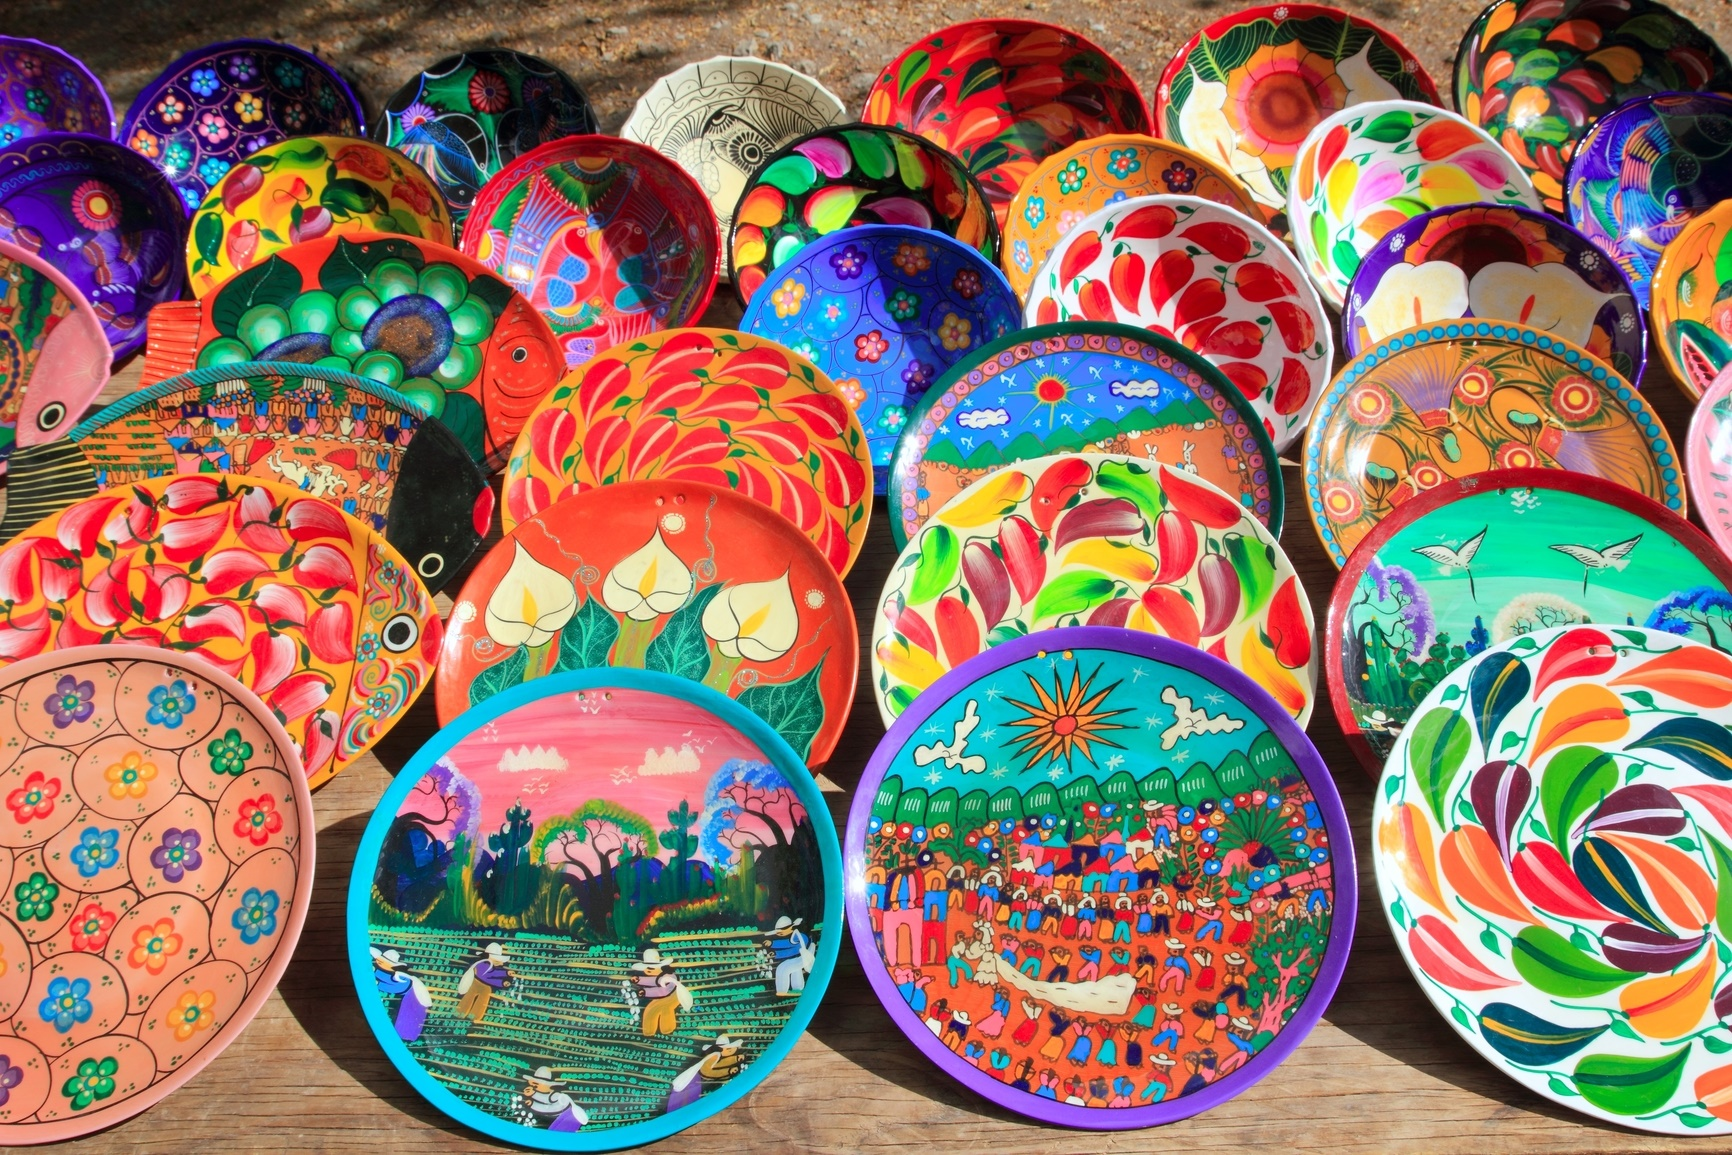 Arts and Crafts - Clay ceramic plates from Mexico colorful